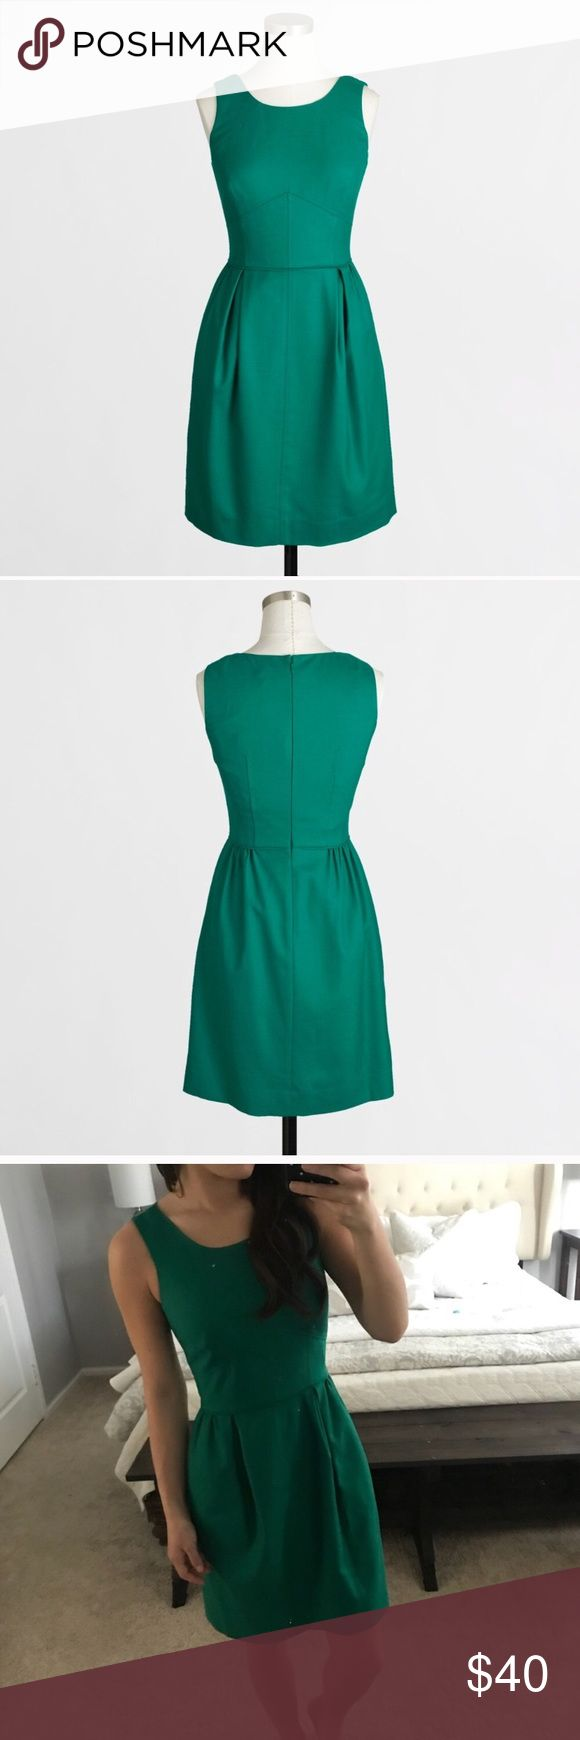 💐 J Crew Flannel Wool Career Dress Green 00 Beautiful dark emerald green dress with fitted bodice, high neck and flare skirt. Perfect to wear to work or on a day out. Bundle to save 💕 J. Crew Factory Dresses